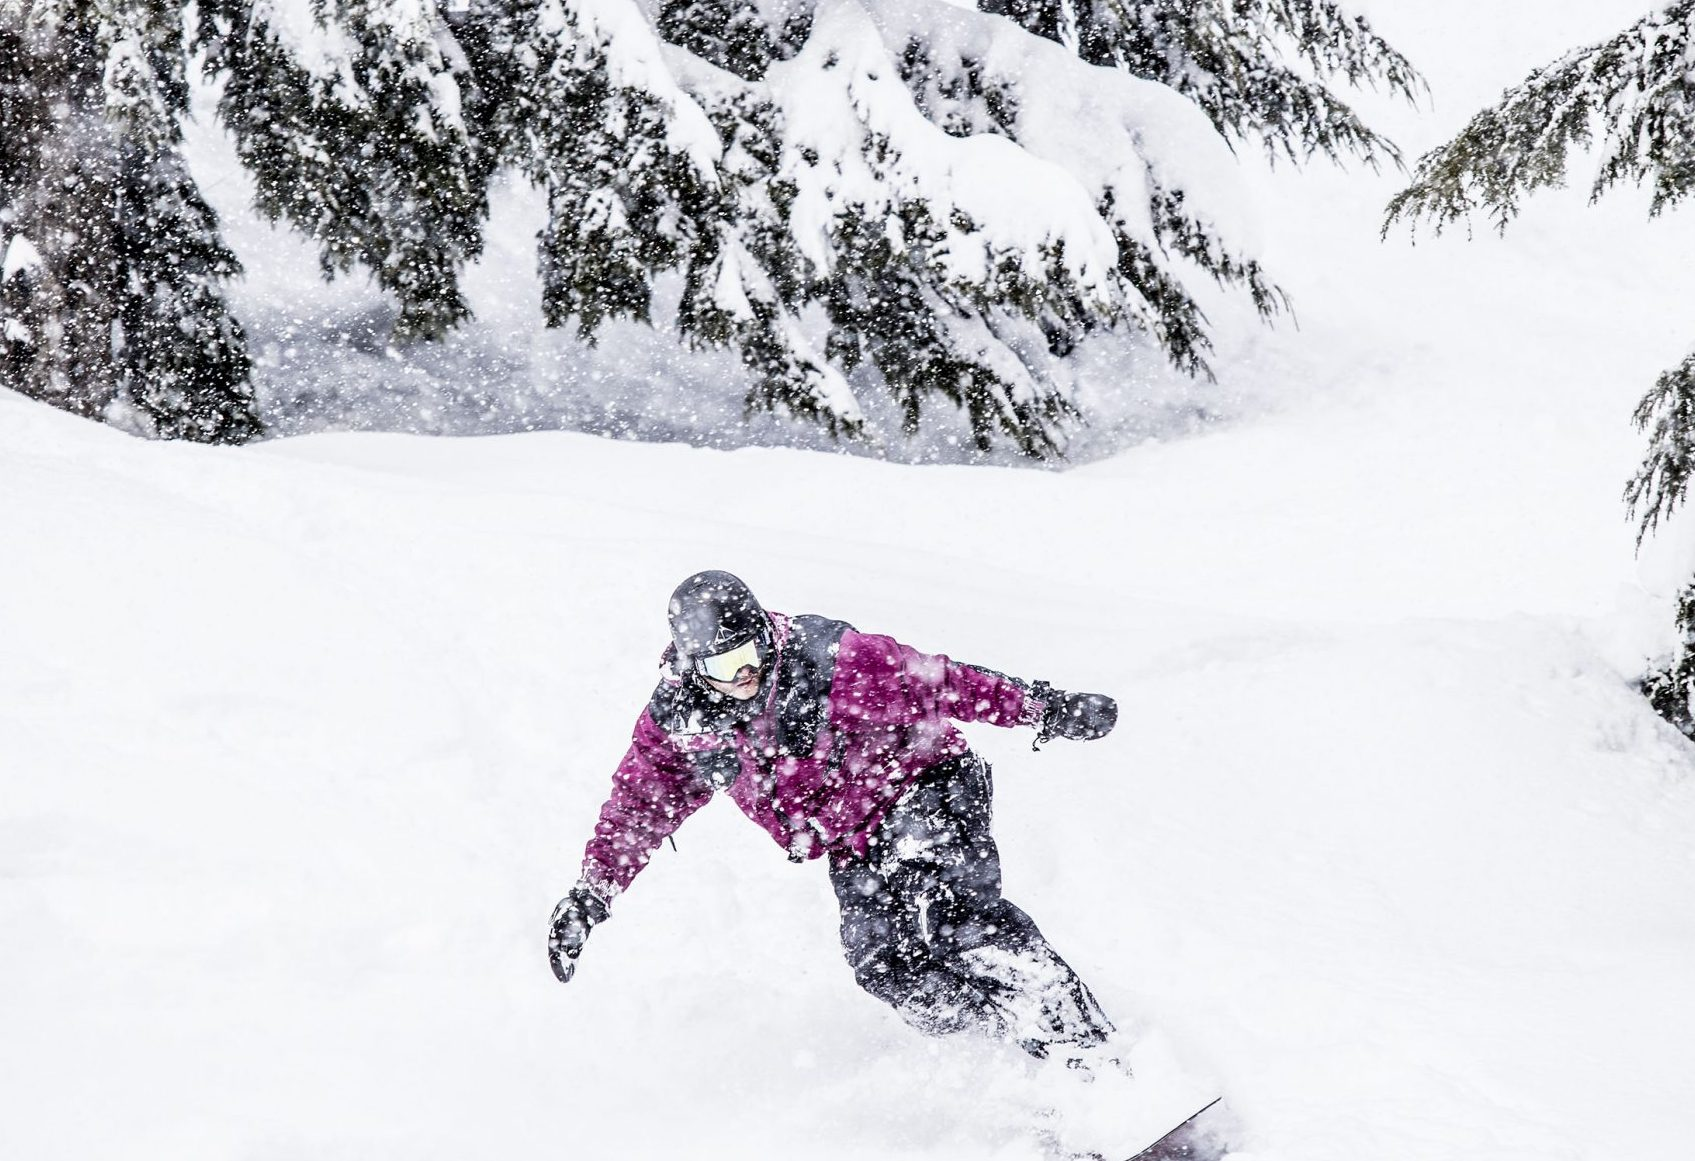 FEEL THE POWDER, Enjoy world-class skiing and snowboarding less than an hour's drive from Seattle.